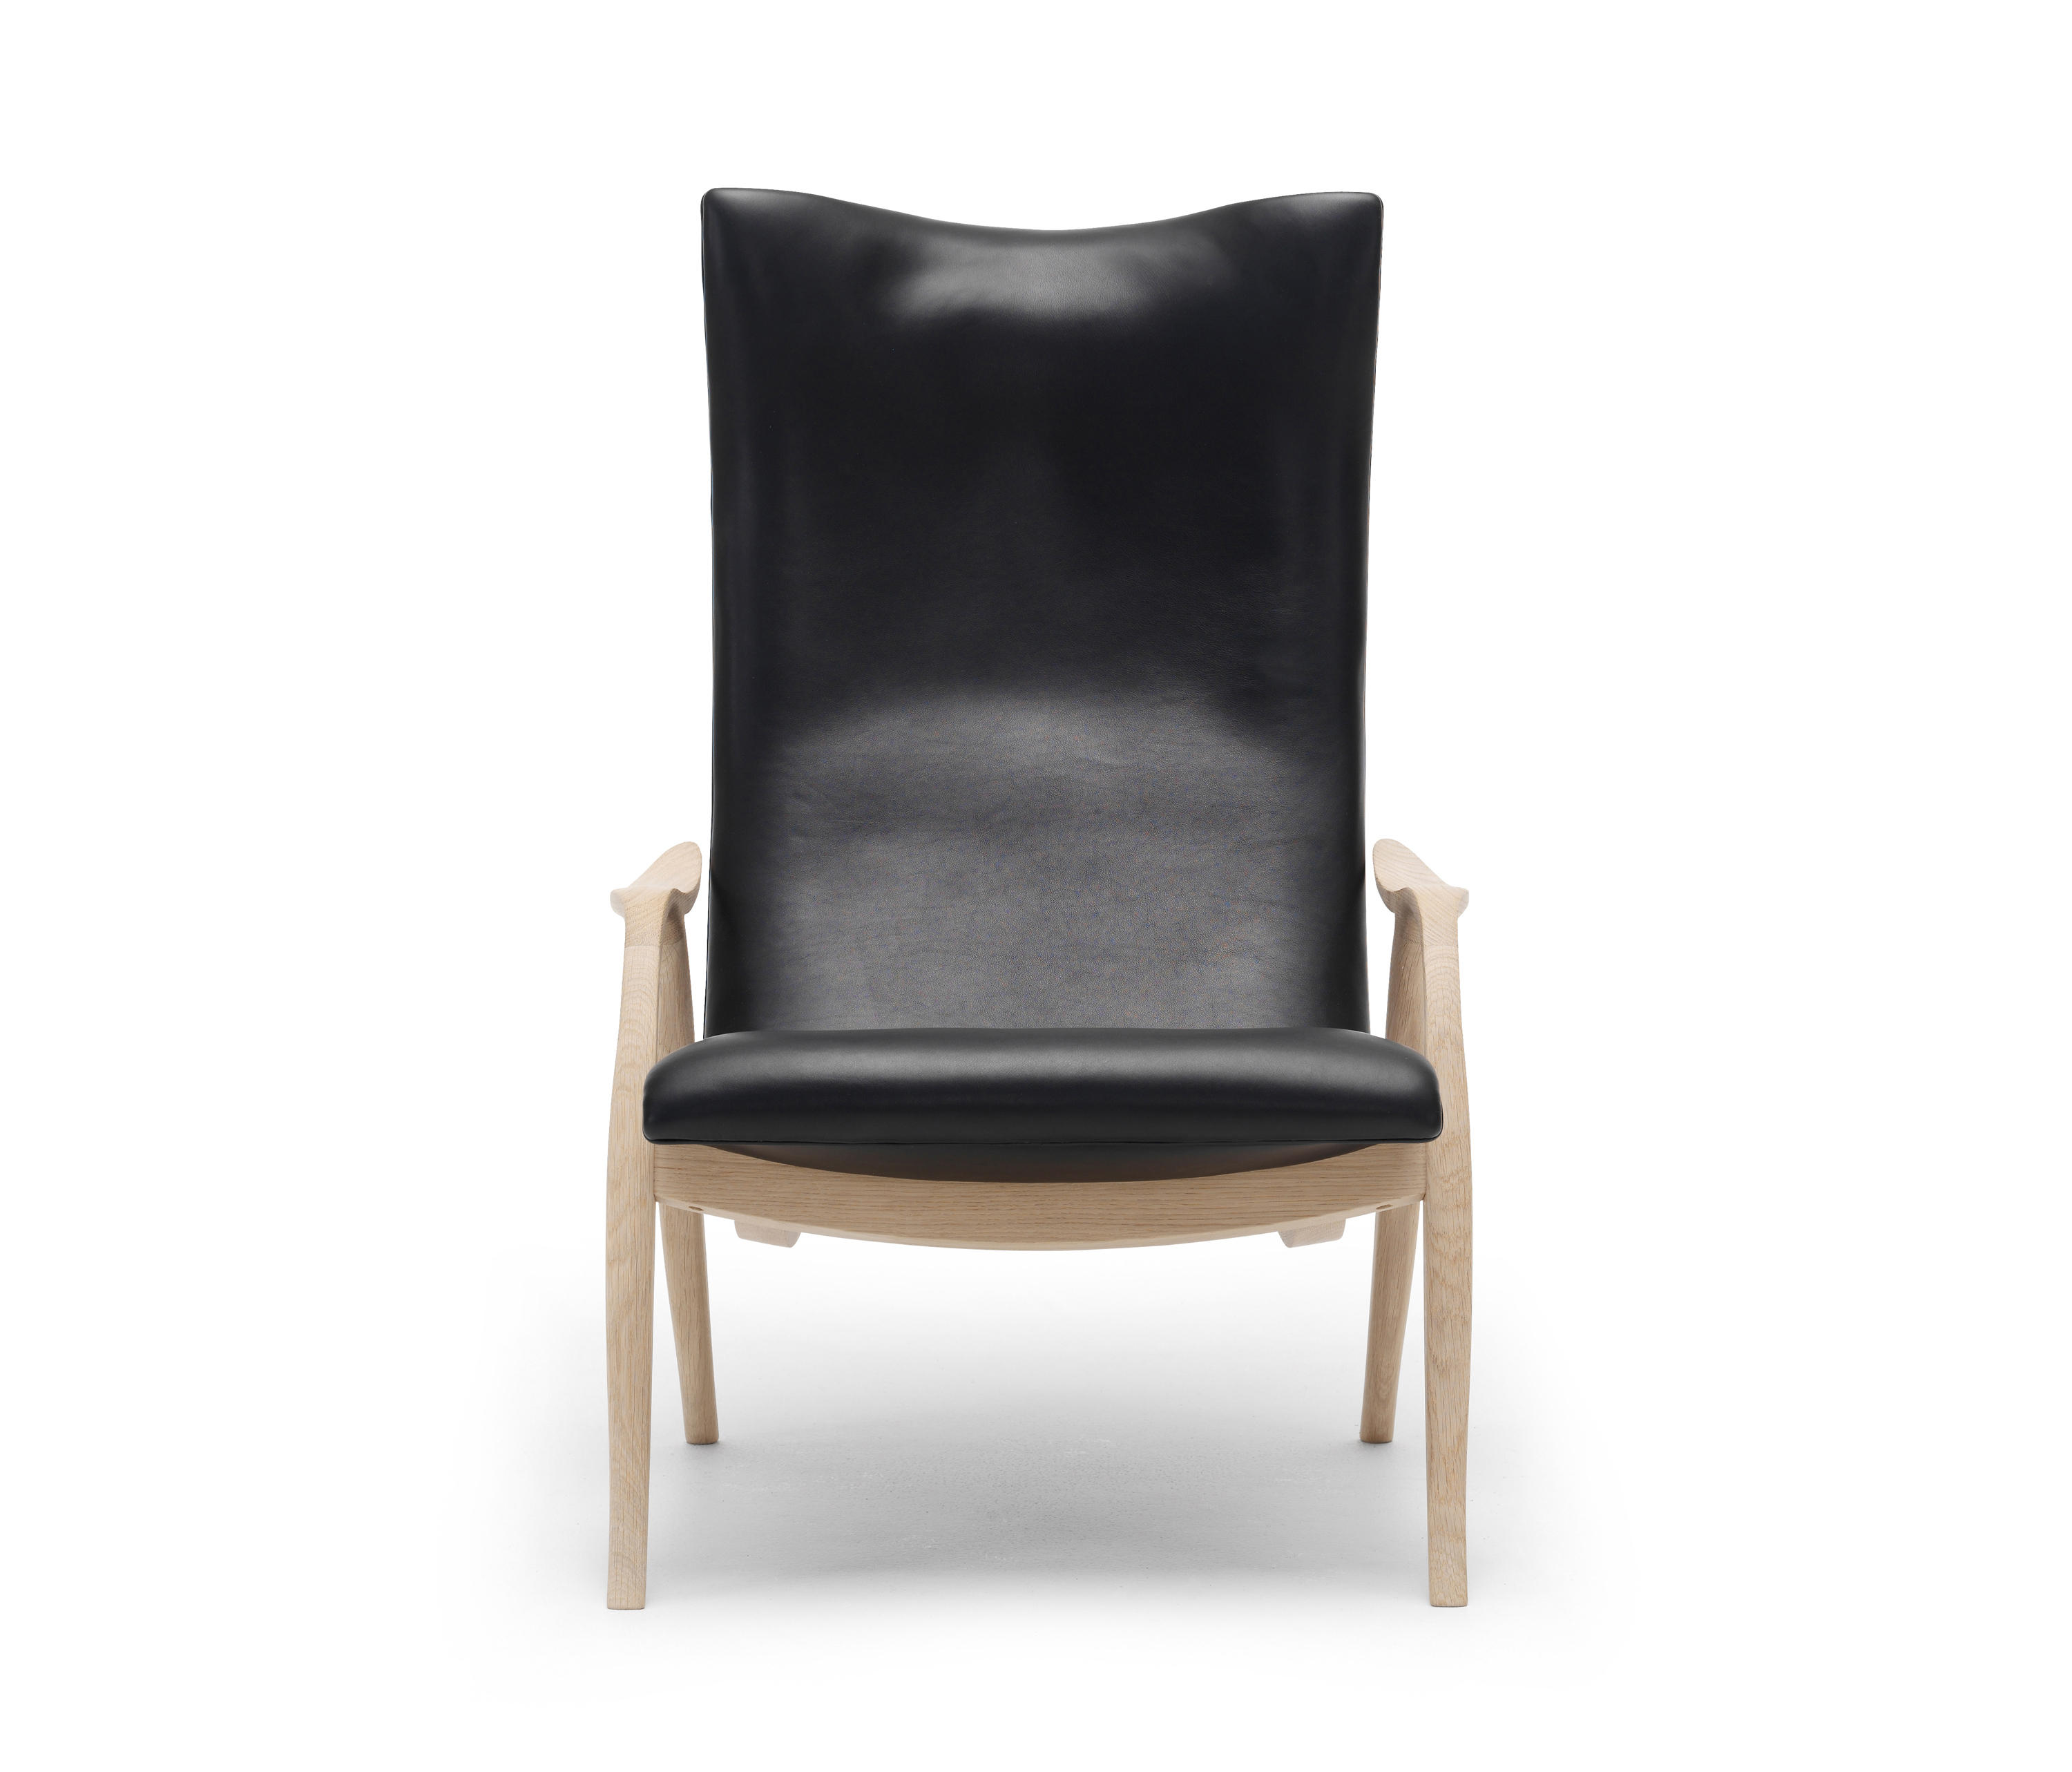 Signature Chair by Frits Henningsen